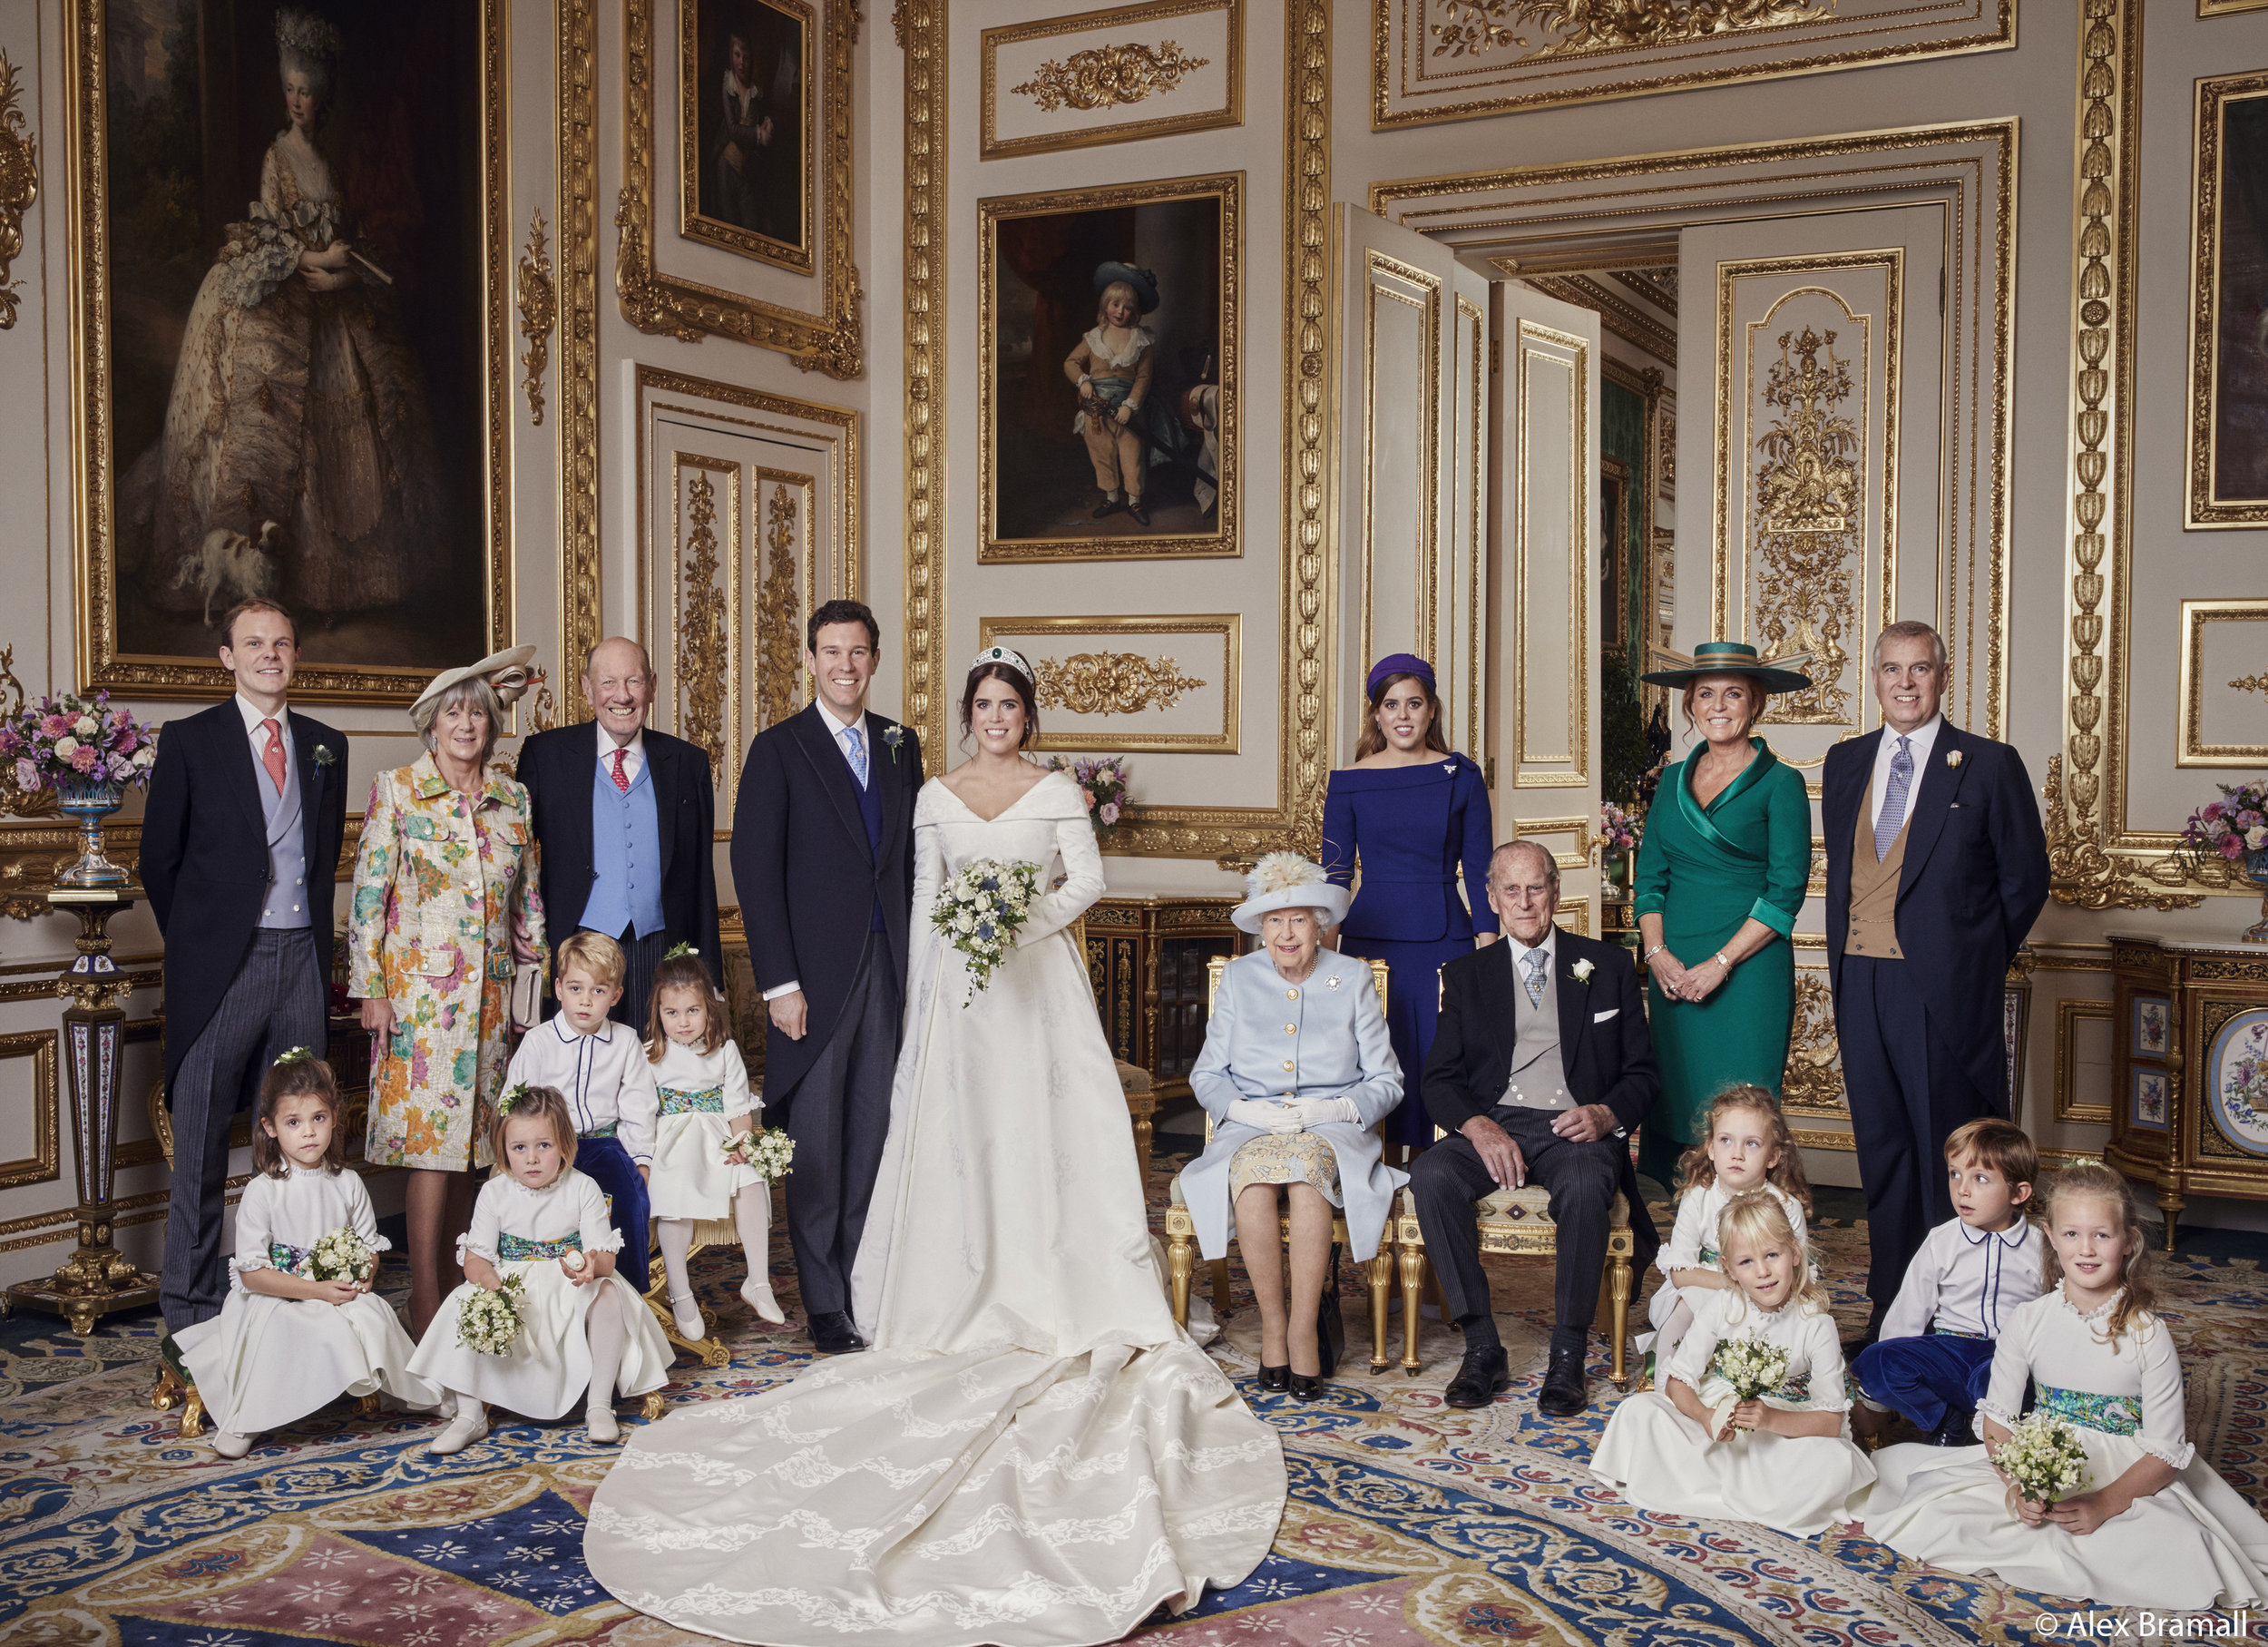 Hintere Reihe: Thomas Brooksbank; Nicola Brooksbank; George Brooksbank; Prinzessin Beatrice, Herzogin Sarah Ferguson und Prinz Andrew   Mittlere Reihe: Prinz George, Prinzessin Charlotte; Queen Elizabeth; Prinz Philip; Maud Windsor; Louis De Givenchy   Hintere Reihe: Theodora Williams; Mia Tindall; Isla Phillips; Savannah Phillips  ©Royal Family / Alex Bramall